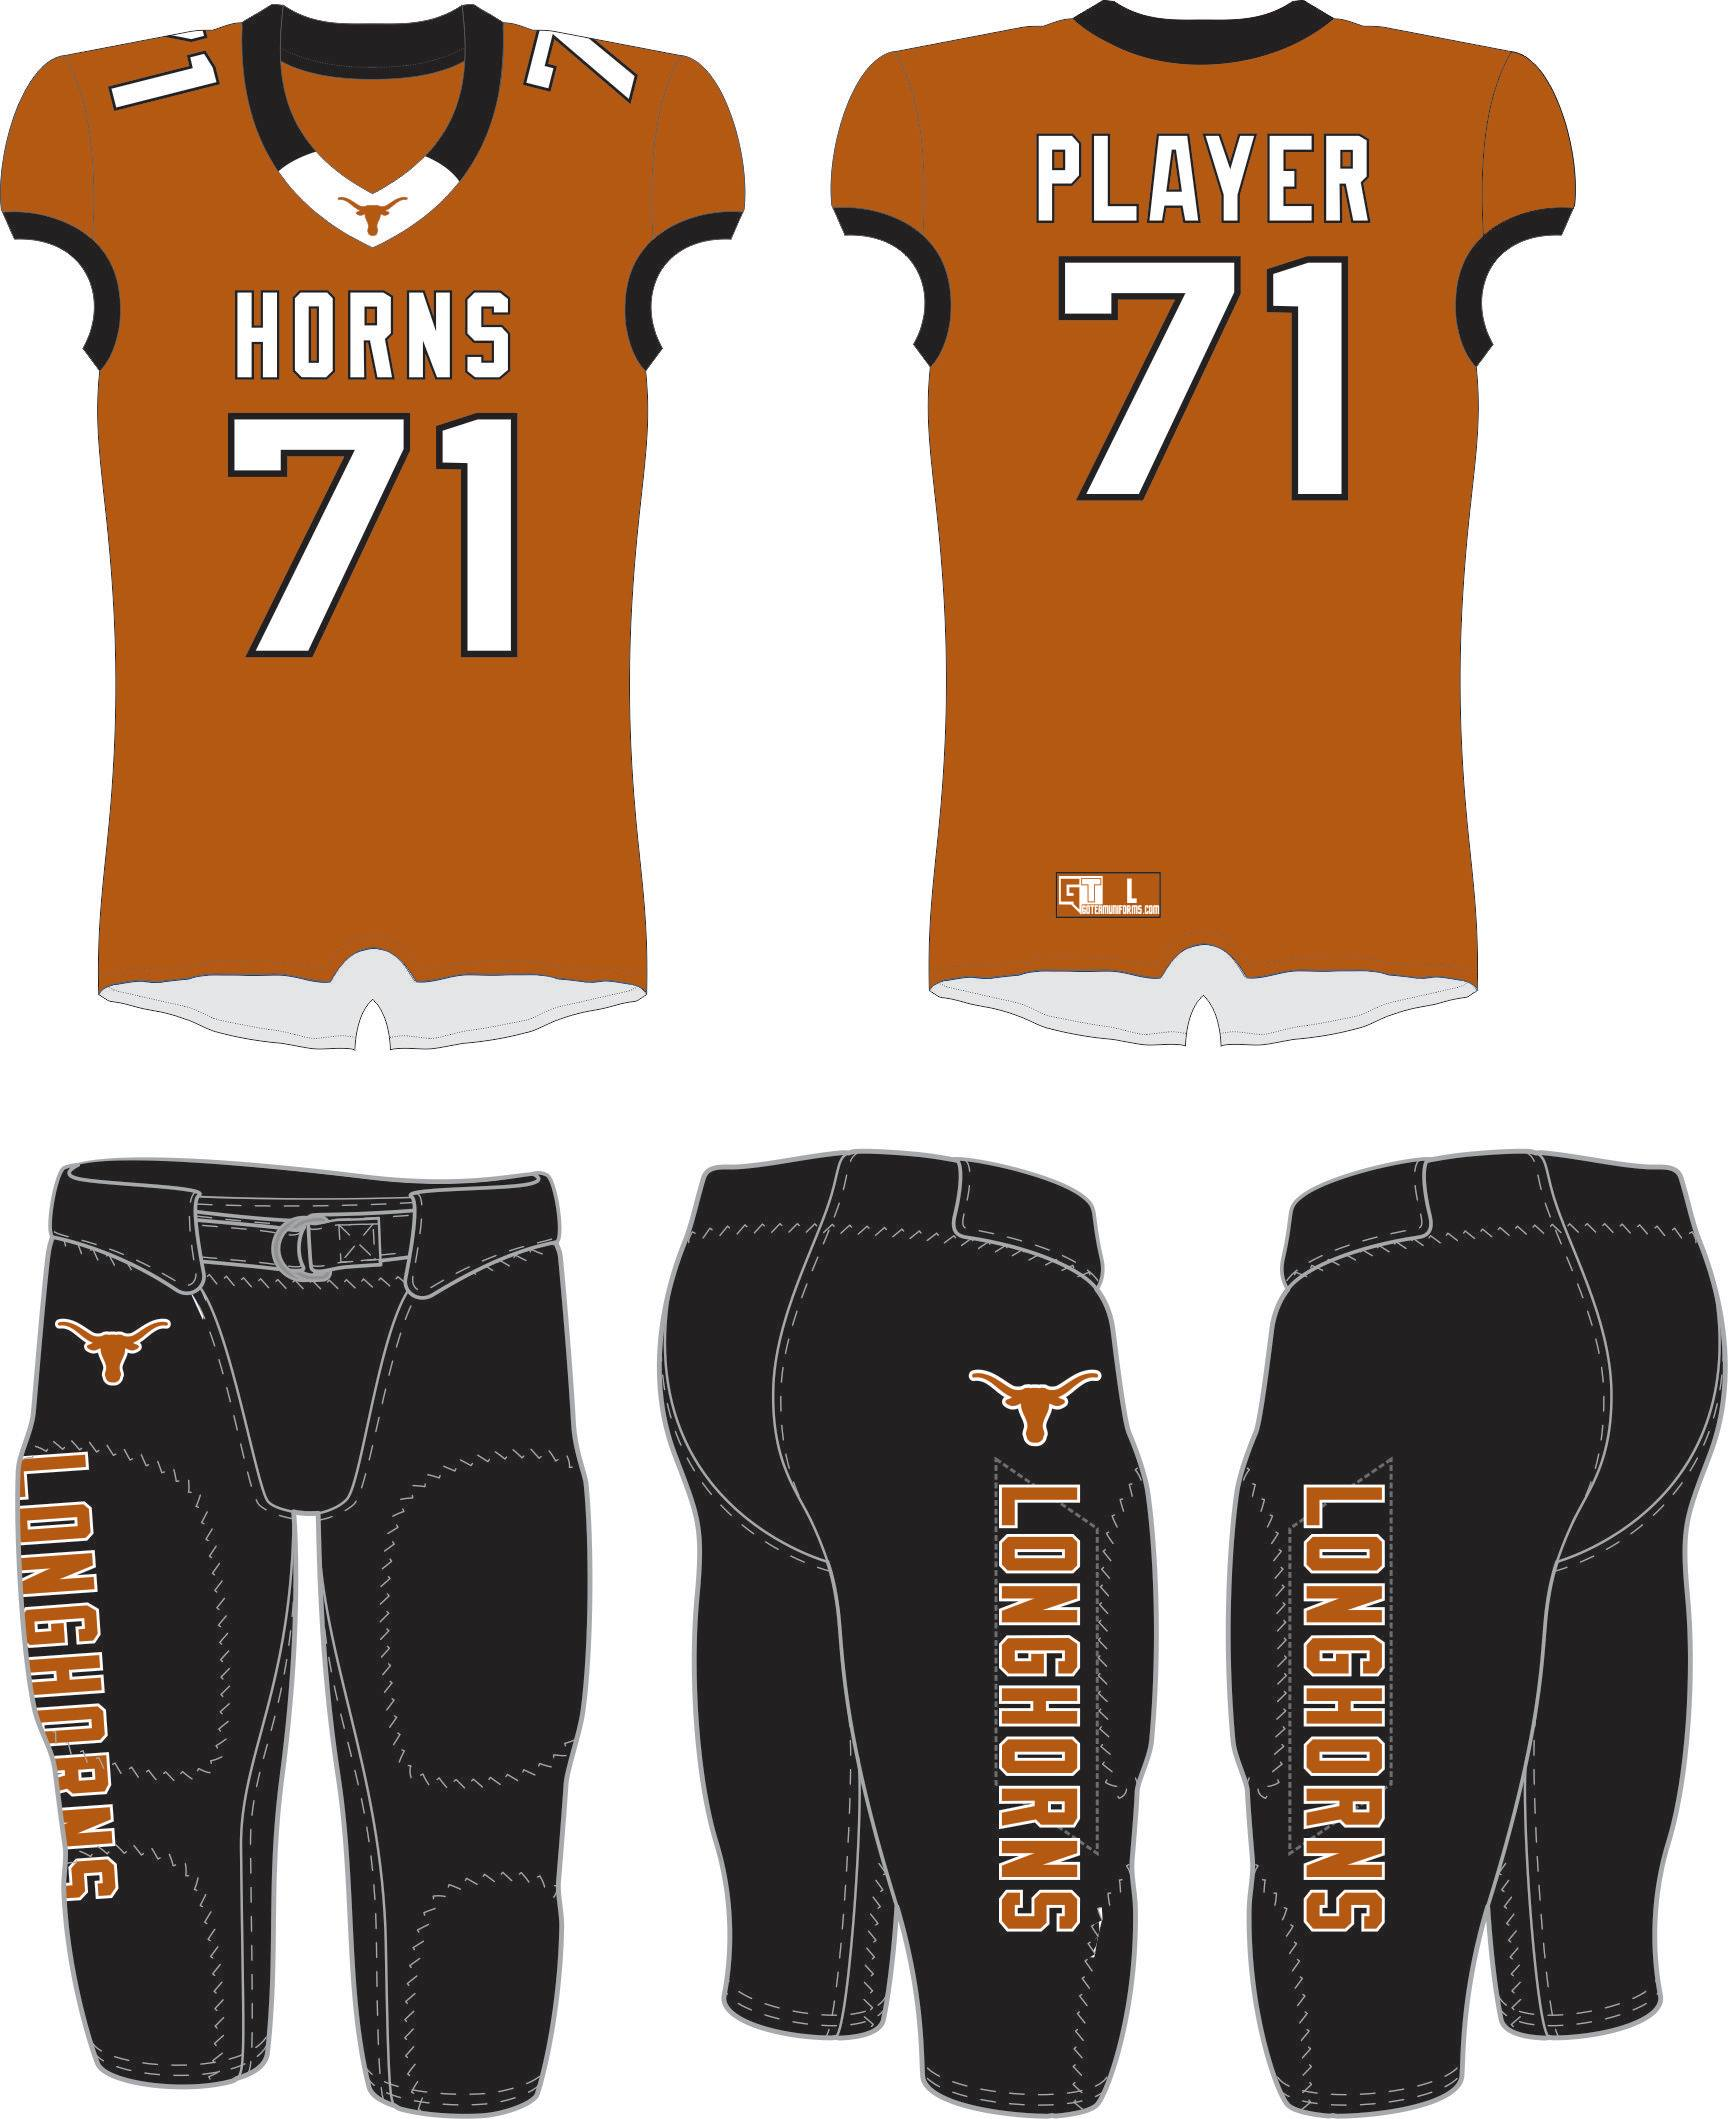 West Texas Longhorns Tackle Uniform